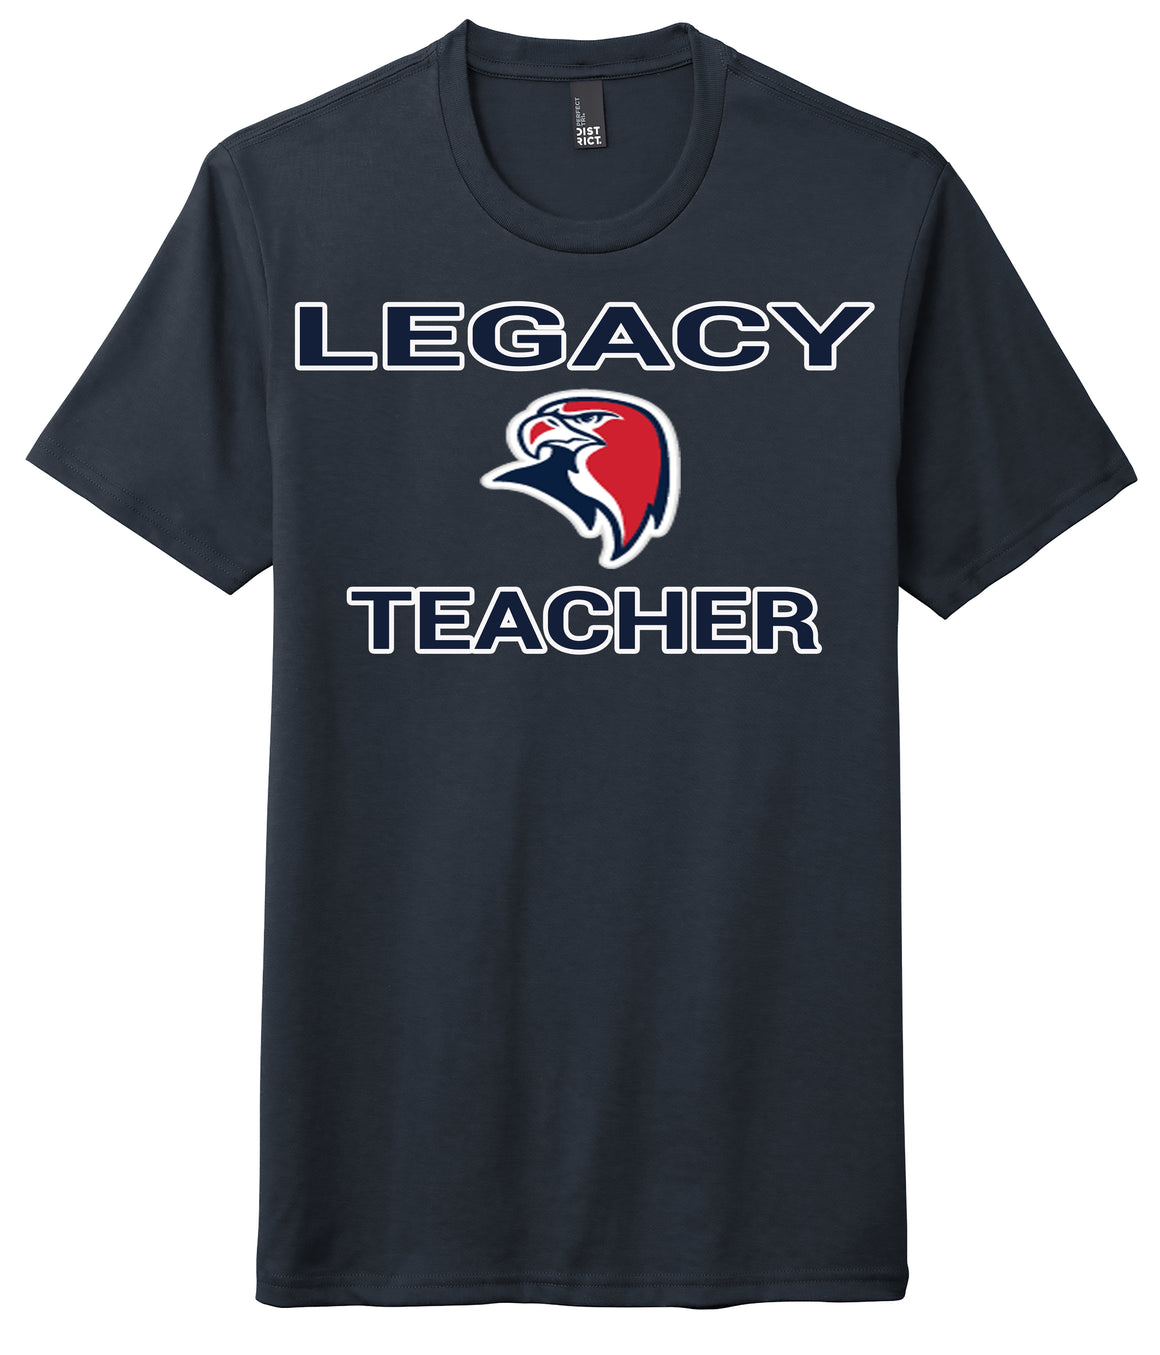 Legacy Traditional School Surprise - Customizable Shirt